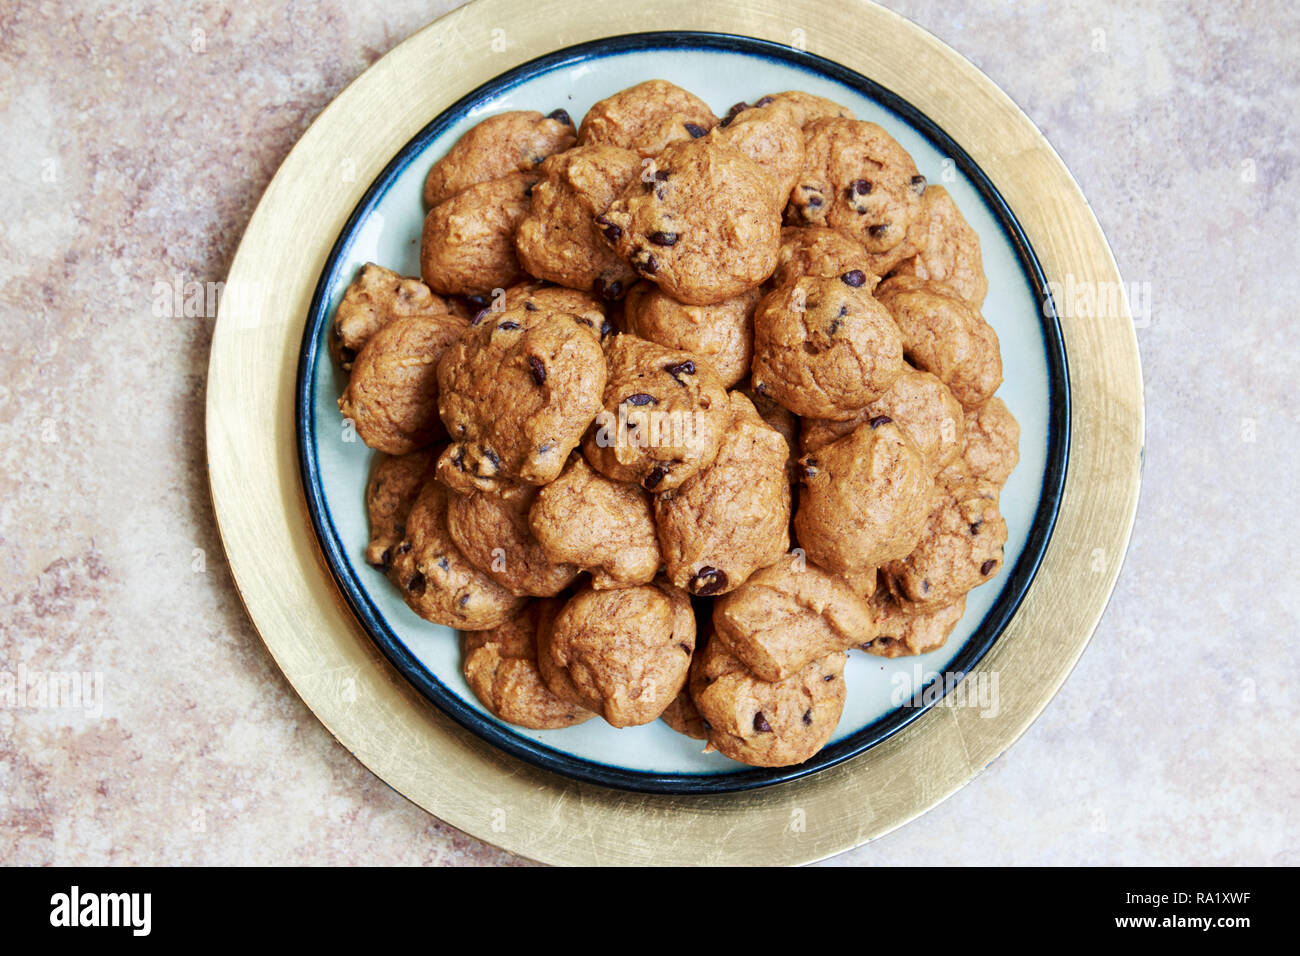 Homemade Pumpkin Chocolate Chip Cookies served on a plate. Stock Photo